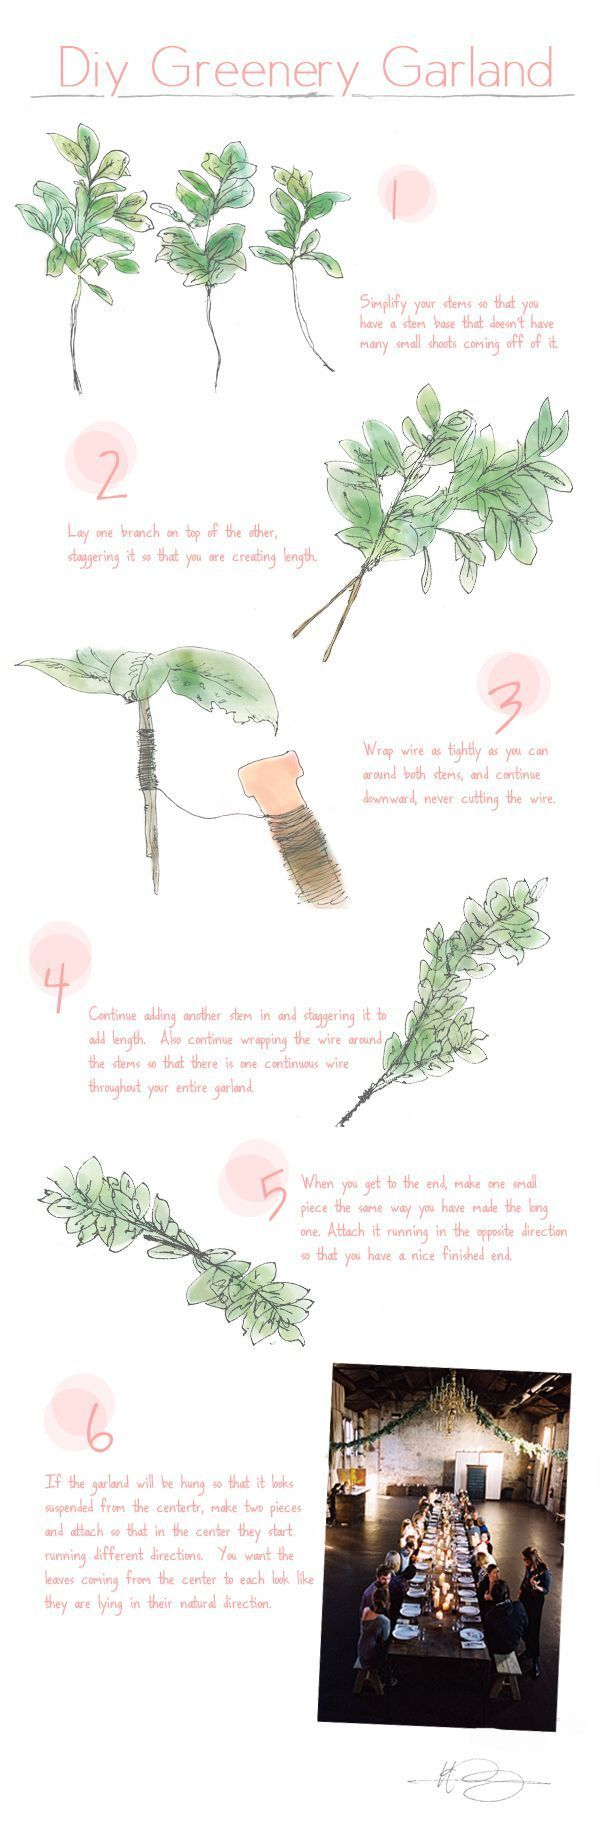 diy-greenery-garland-2